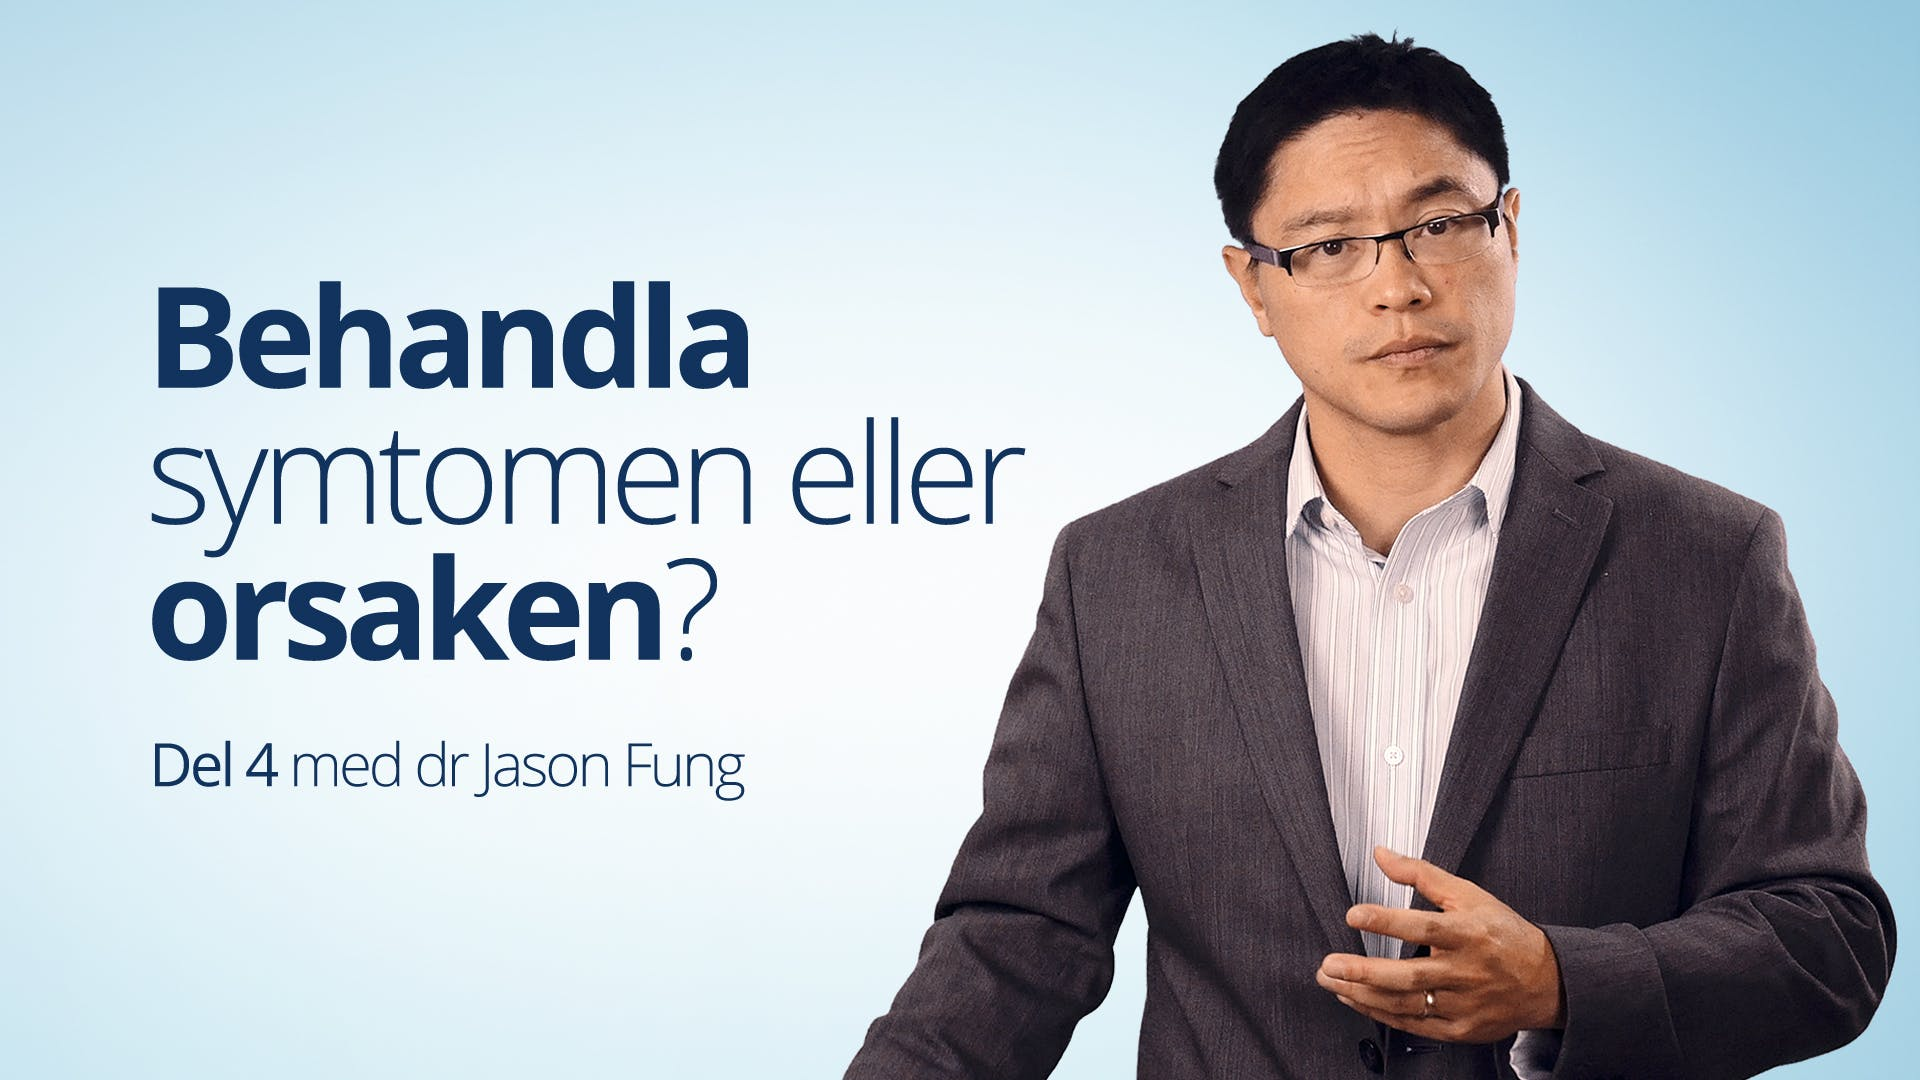 VIDEO: Treating the Symptoms or the Cause? - Part 4 of the diabetes course with Jason Fung